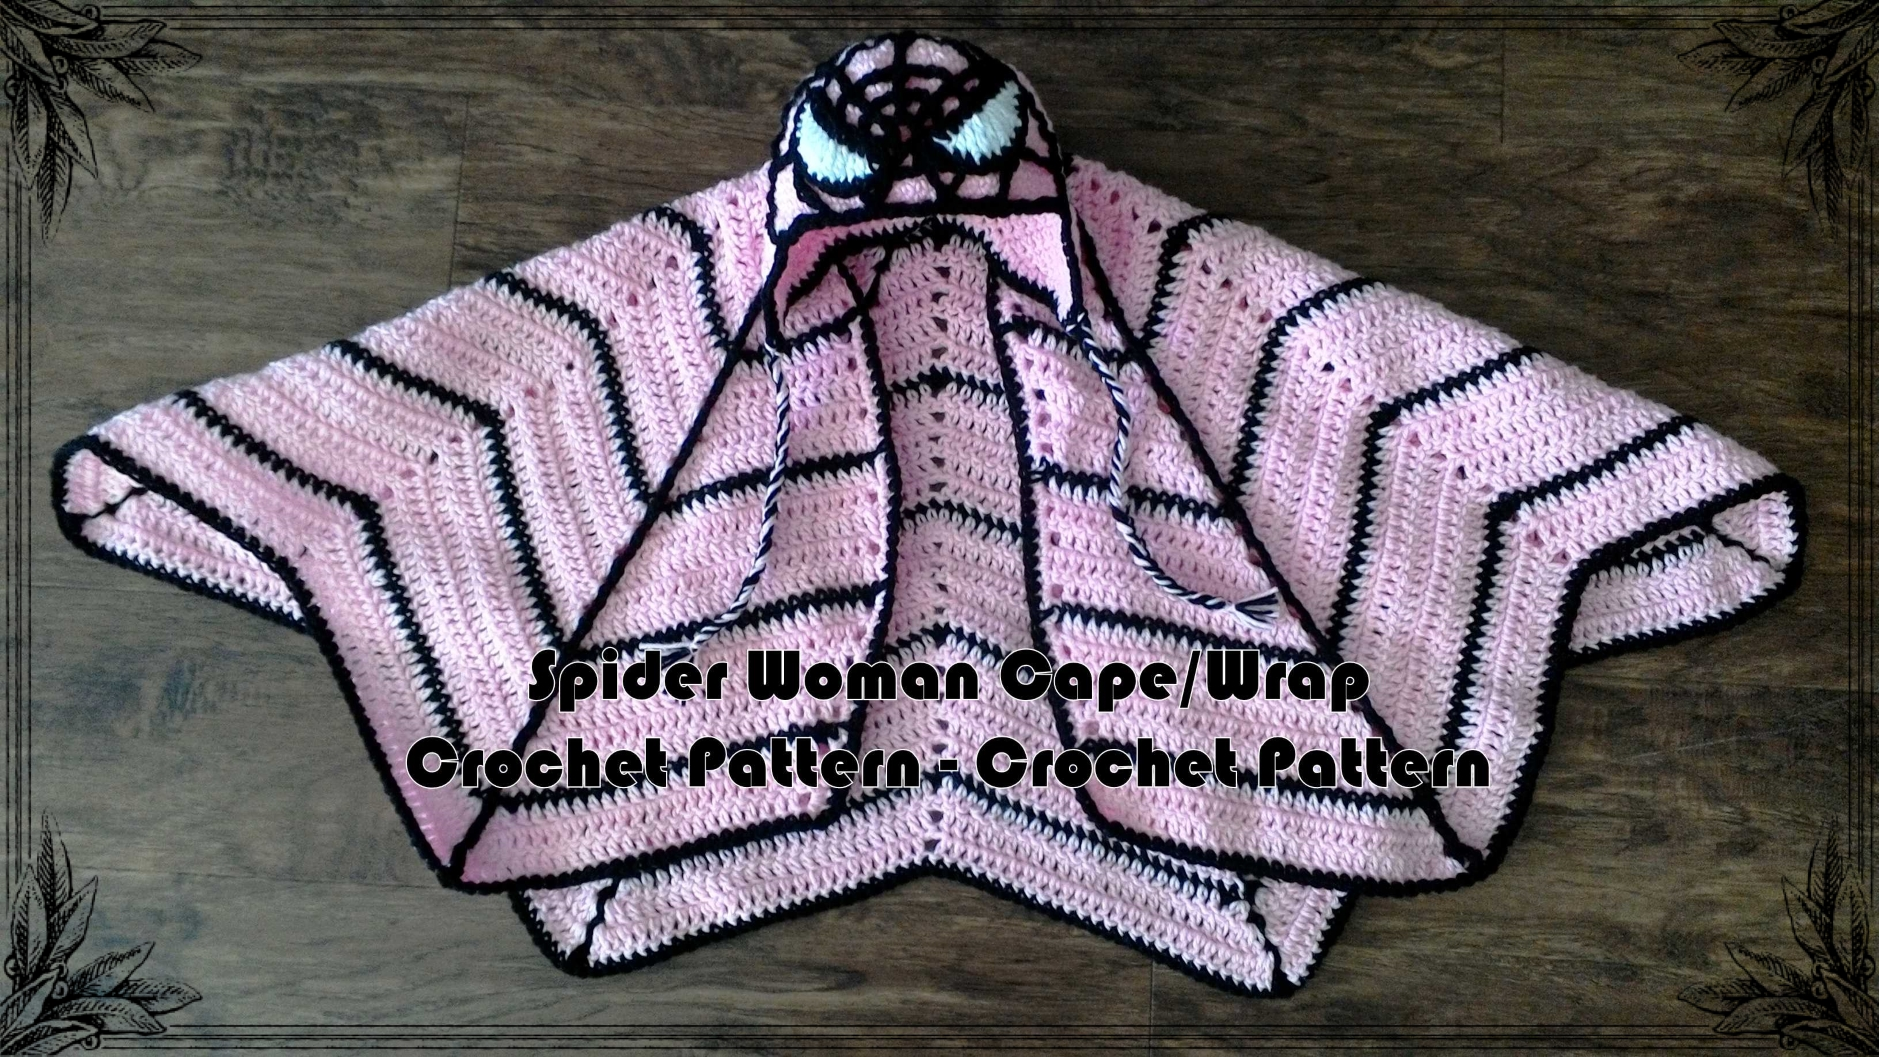 Spider Woman Cape/Wrap Crochet Pattern